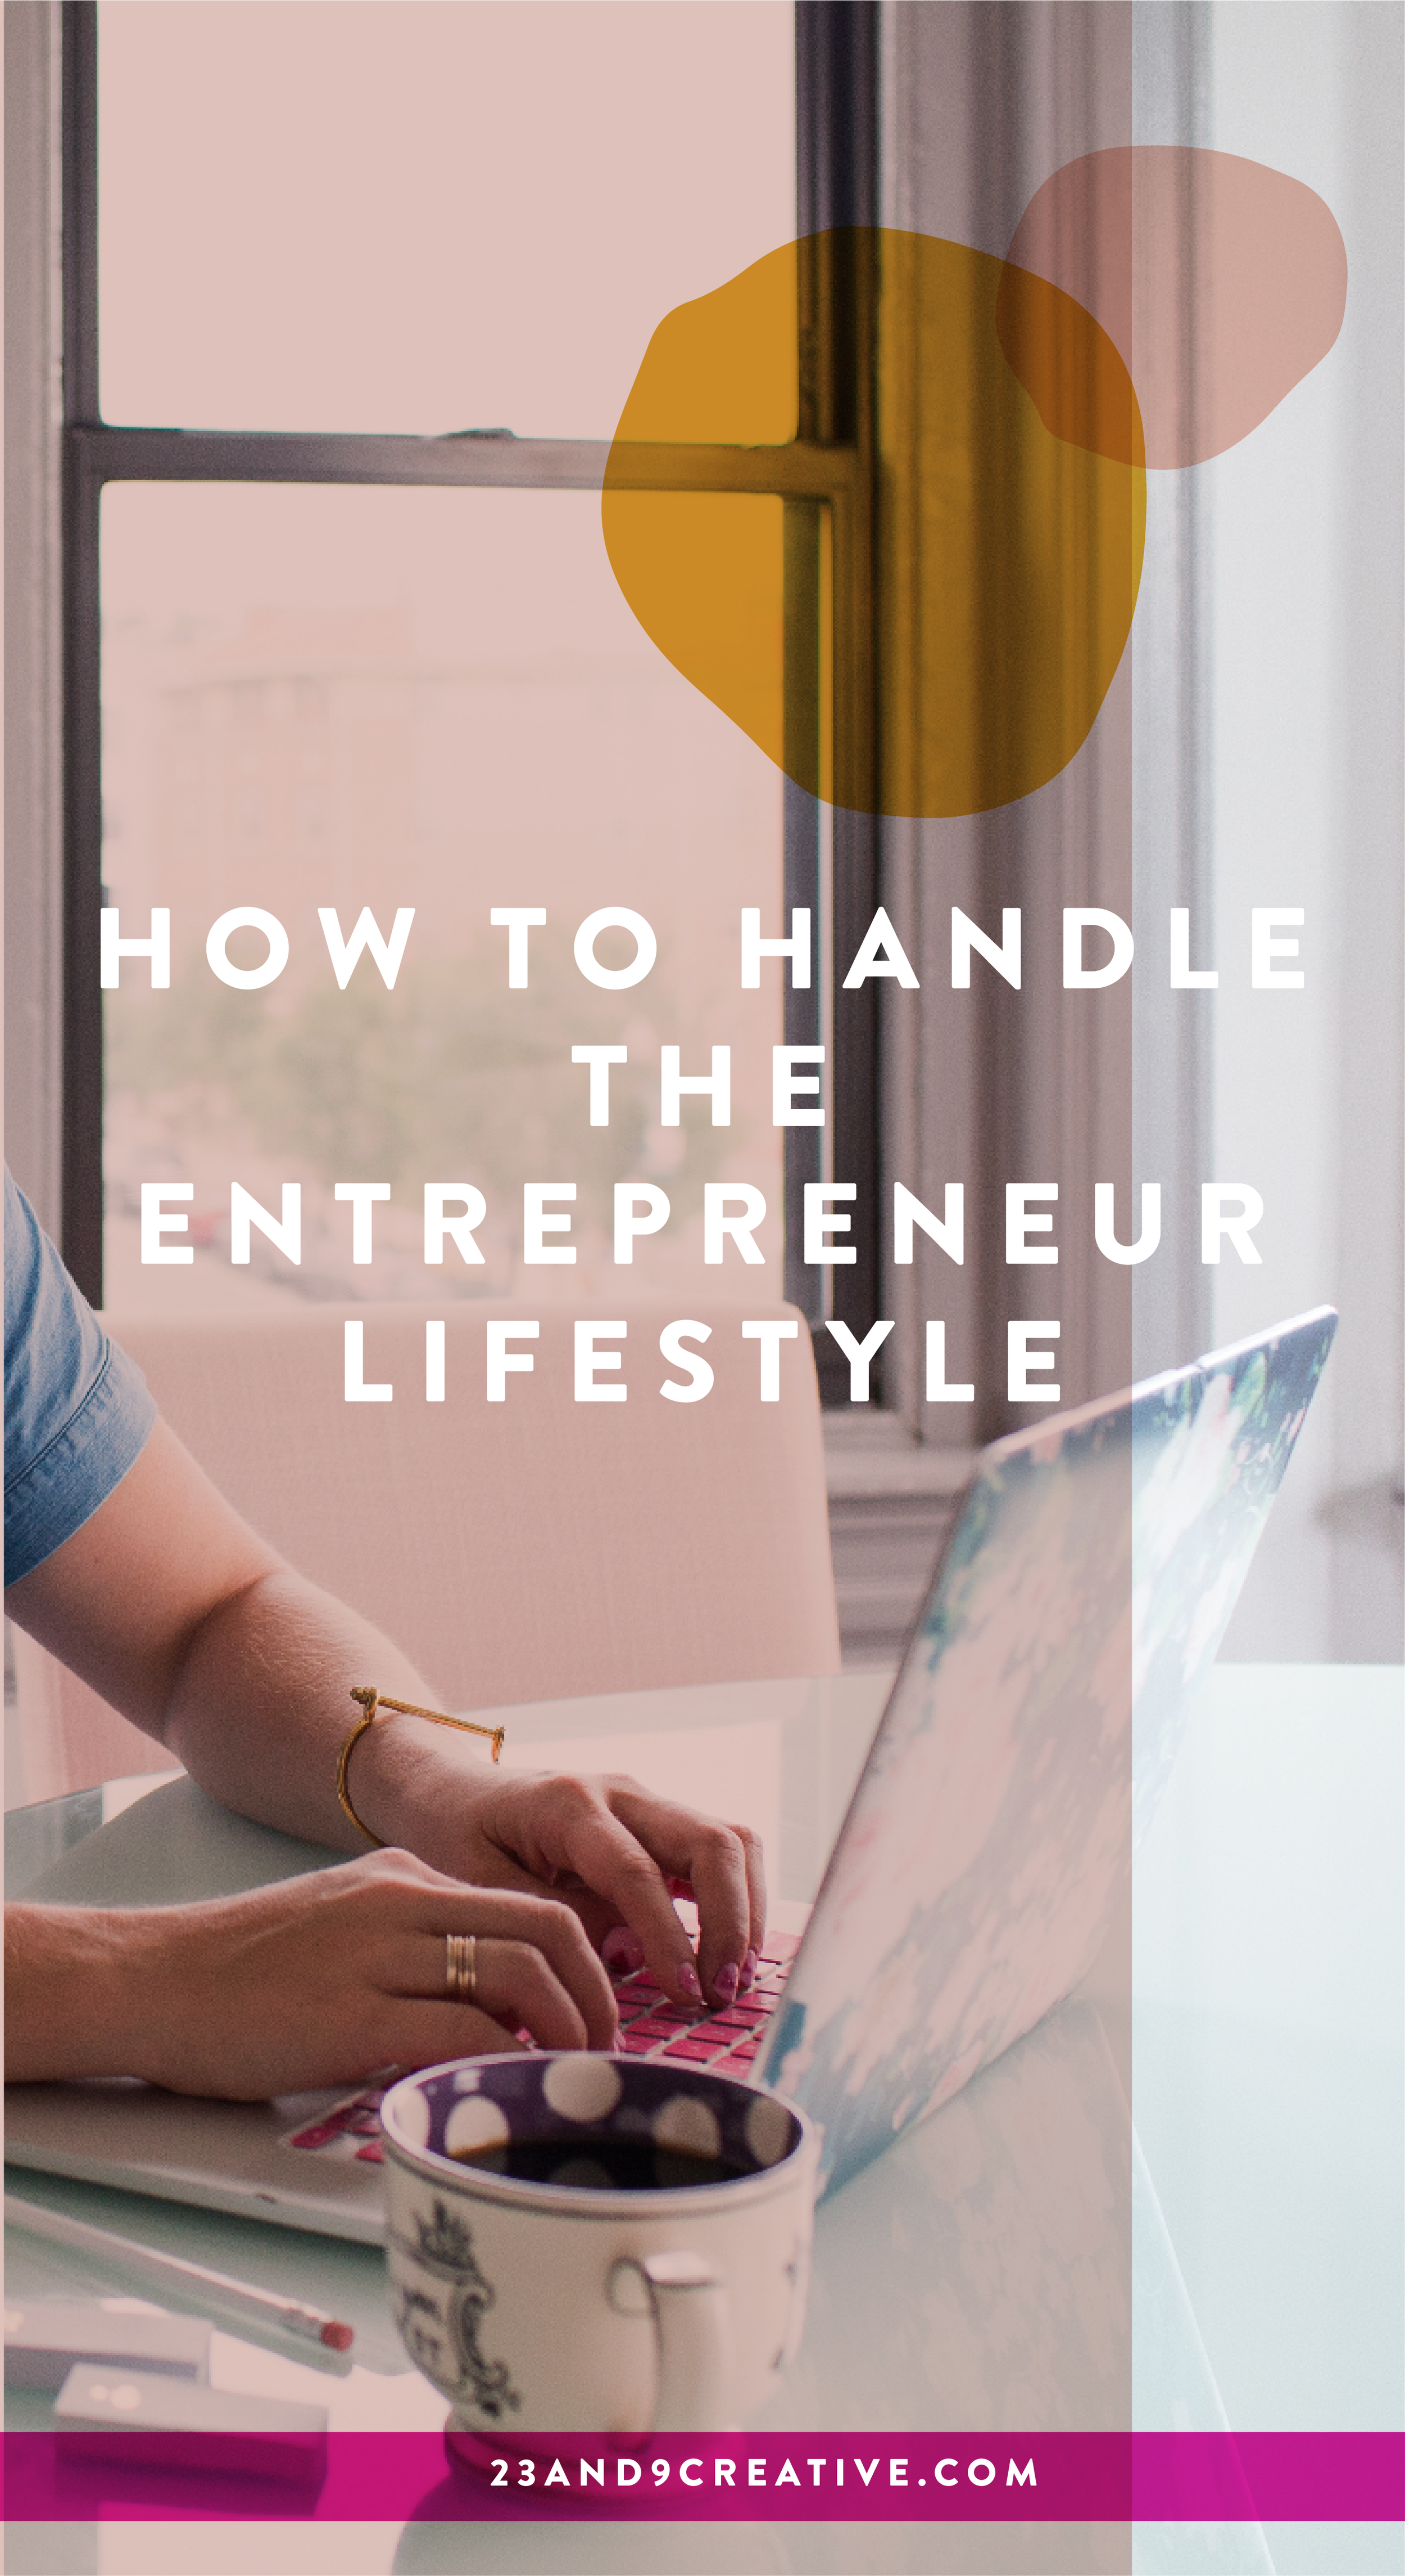 How to handle the entrepreneur lifestyle